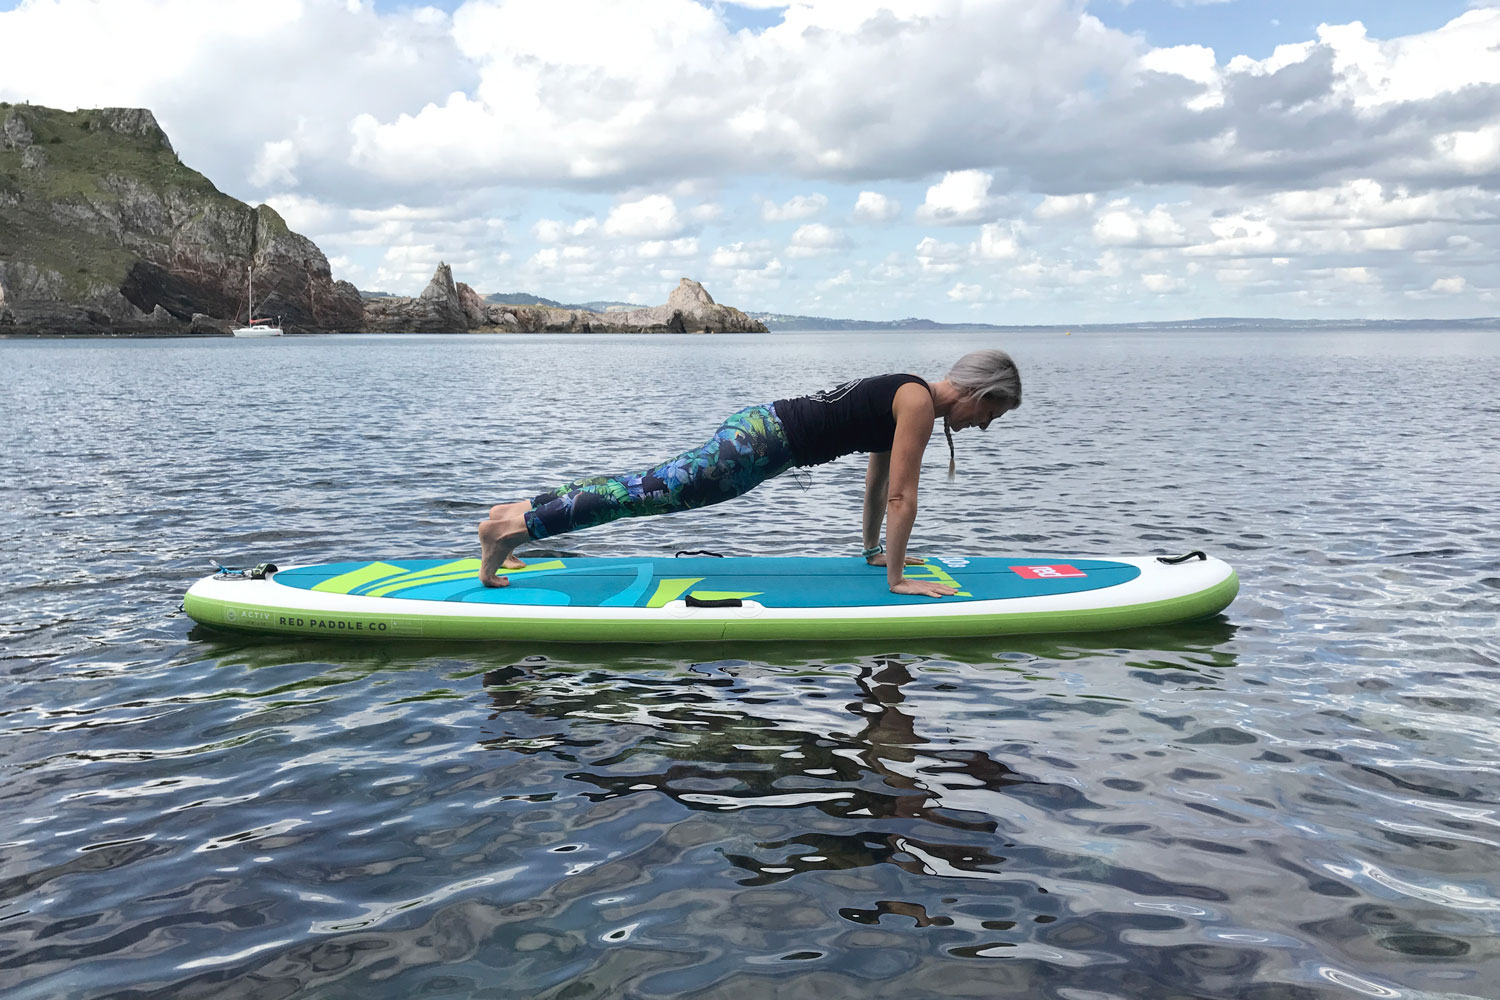 Plank on an inflatable paddle board